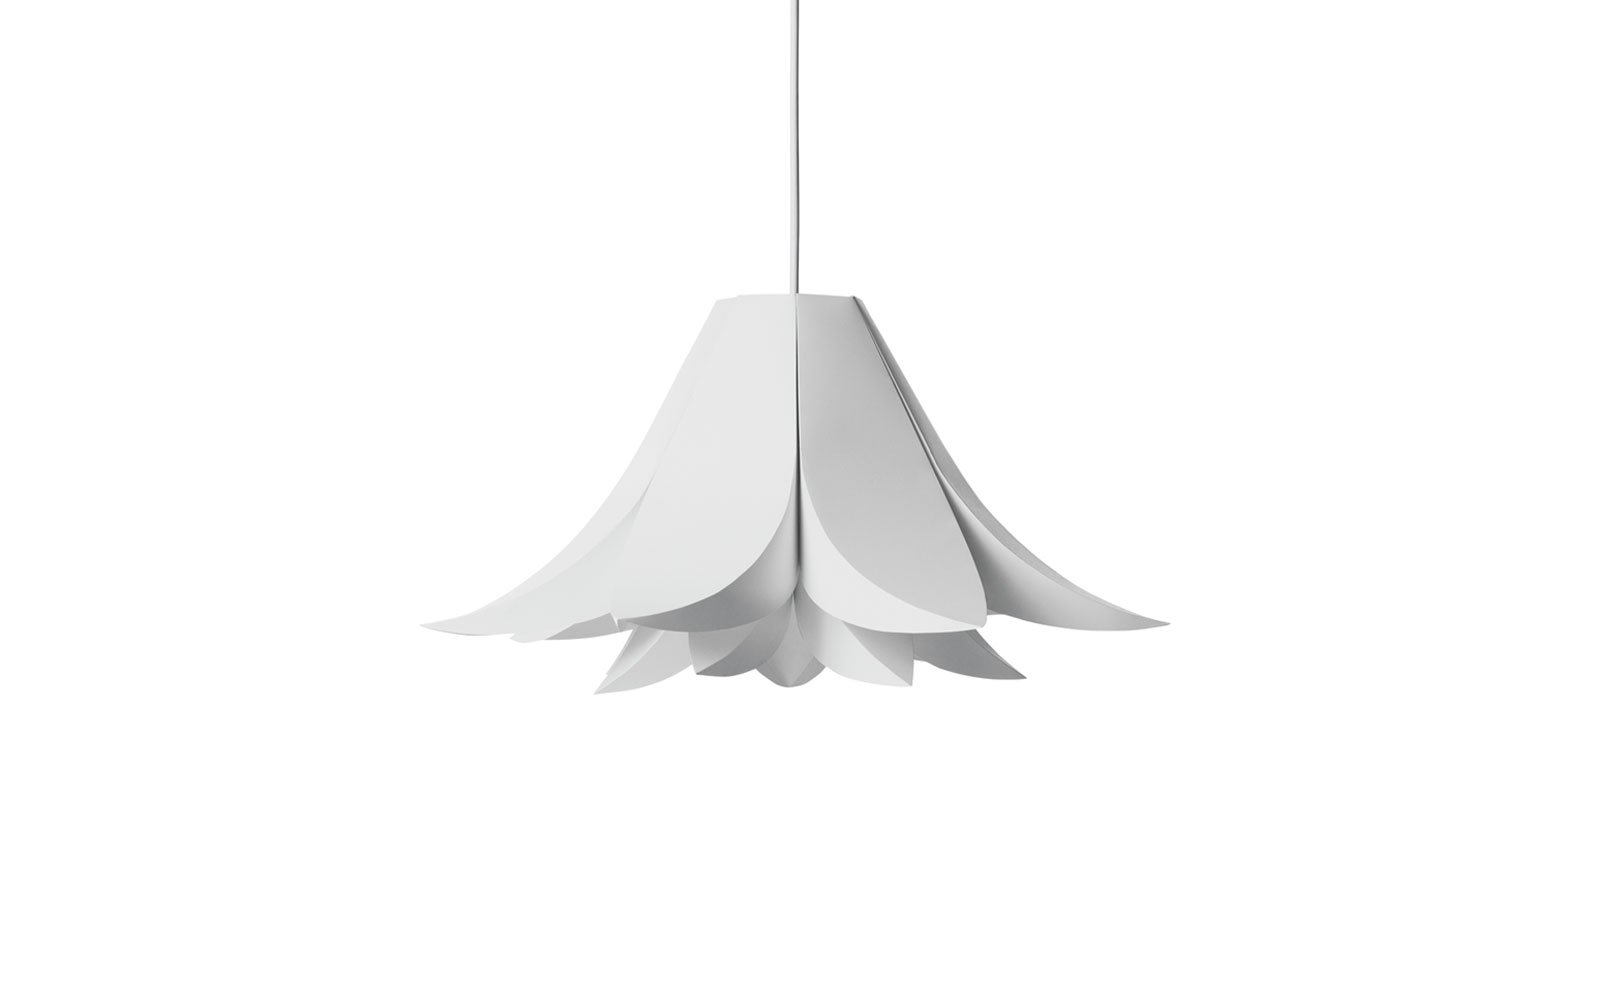 Norm Small White NC Design Lamp